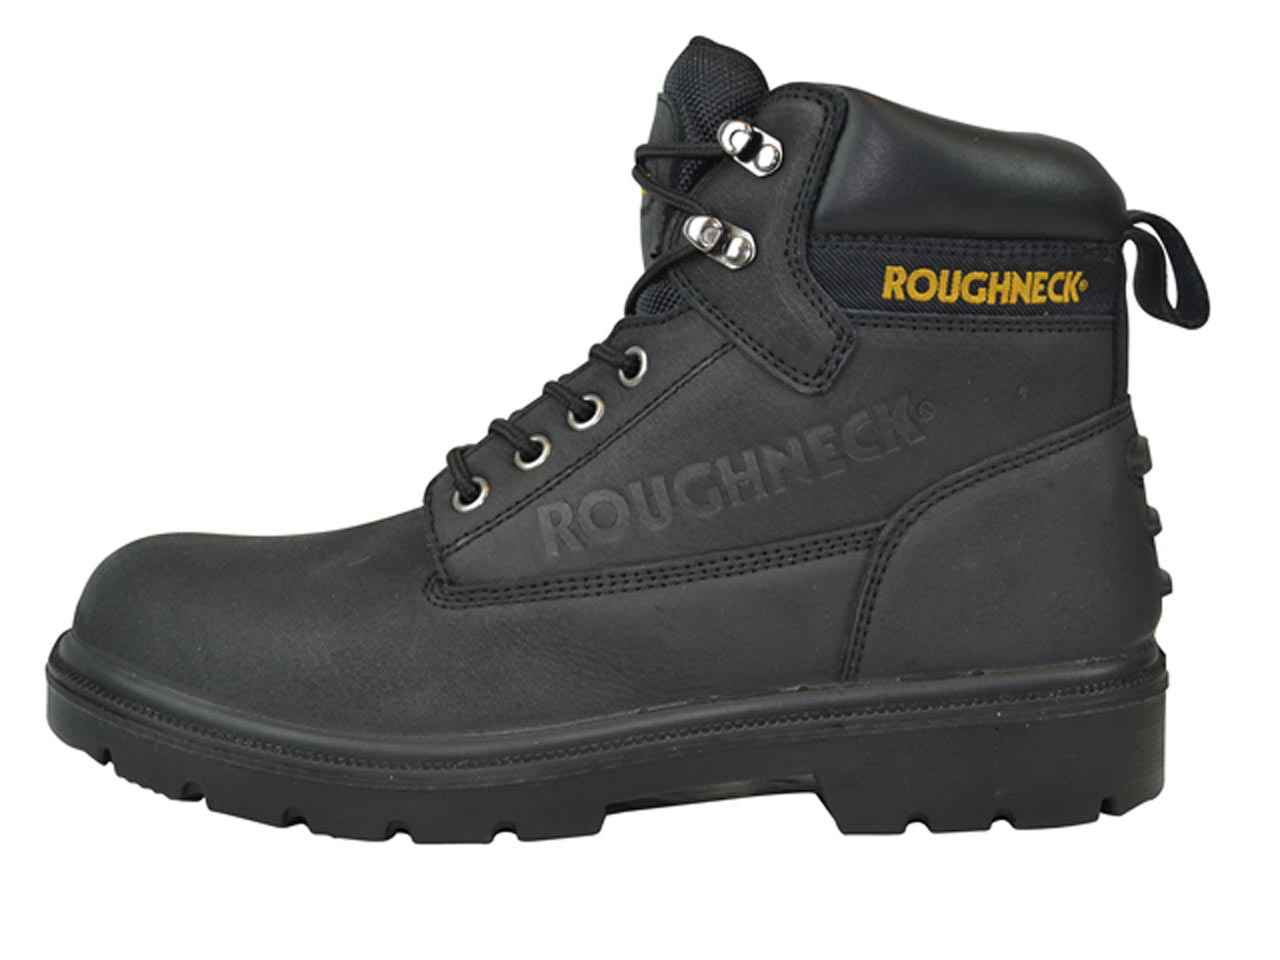 9883ba97914 Roughneck Tornado Boots Various Colours and Sizes